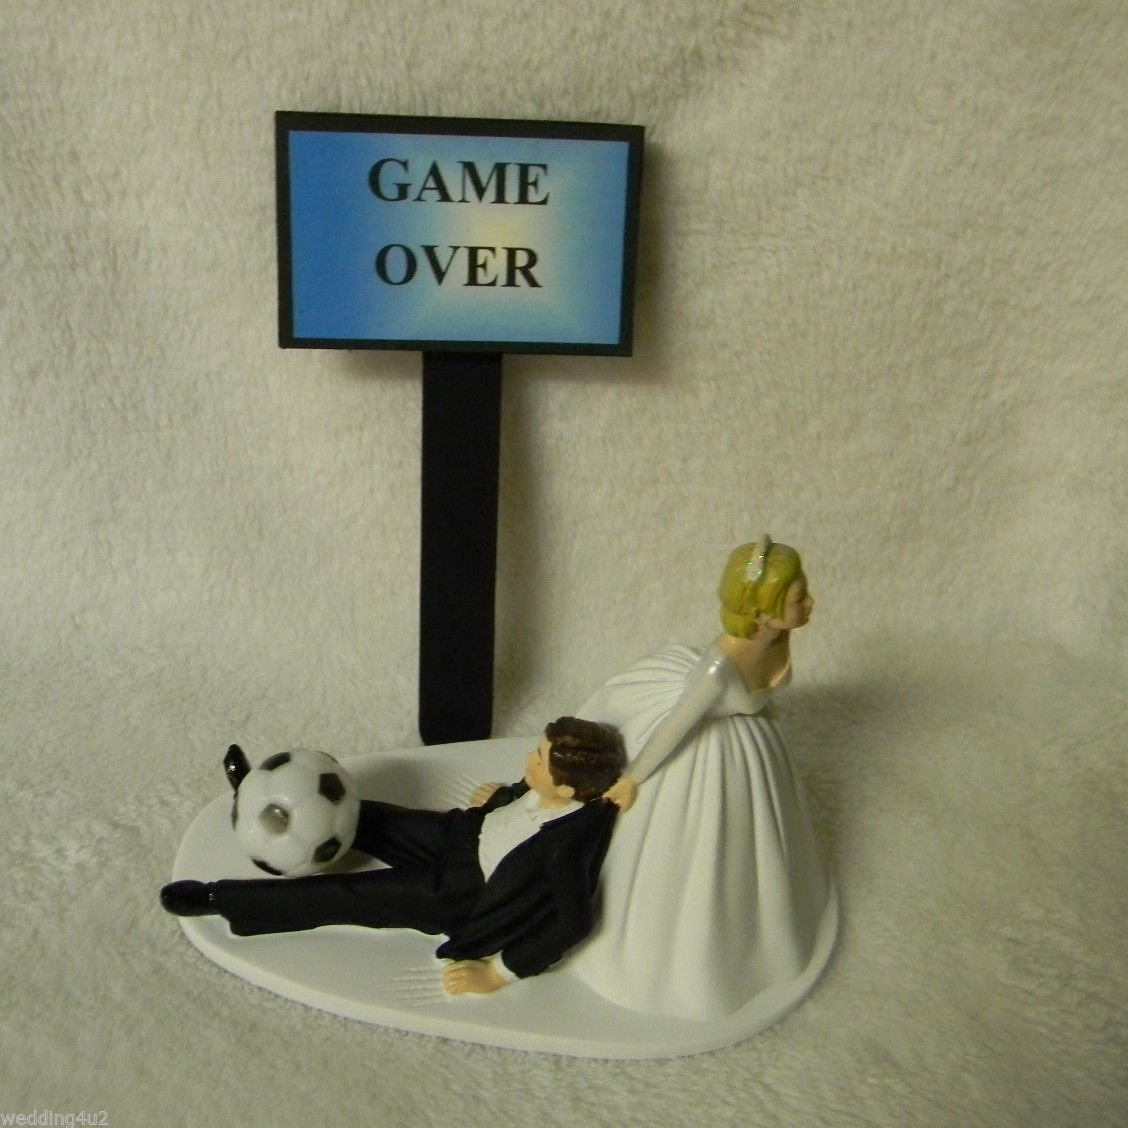 Wedding Party Reception Game Over Sign Soccer Sports Sign Cake Topper